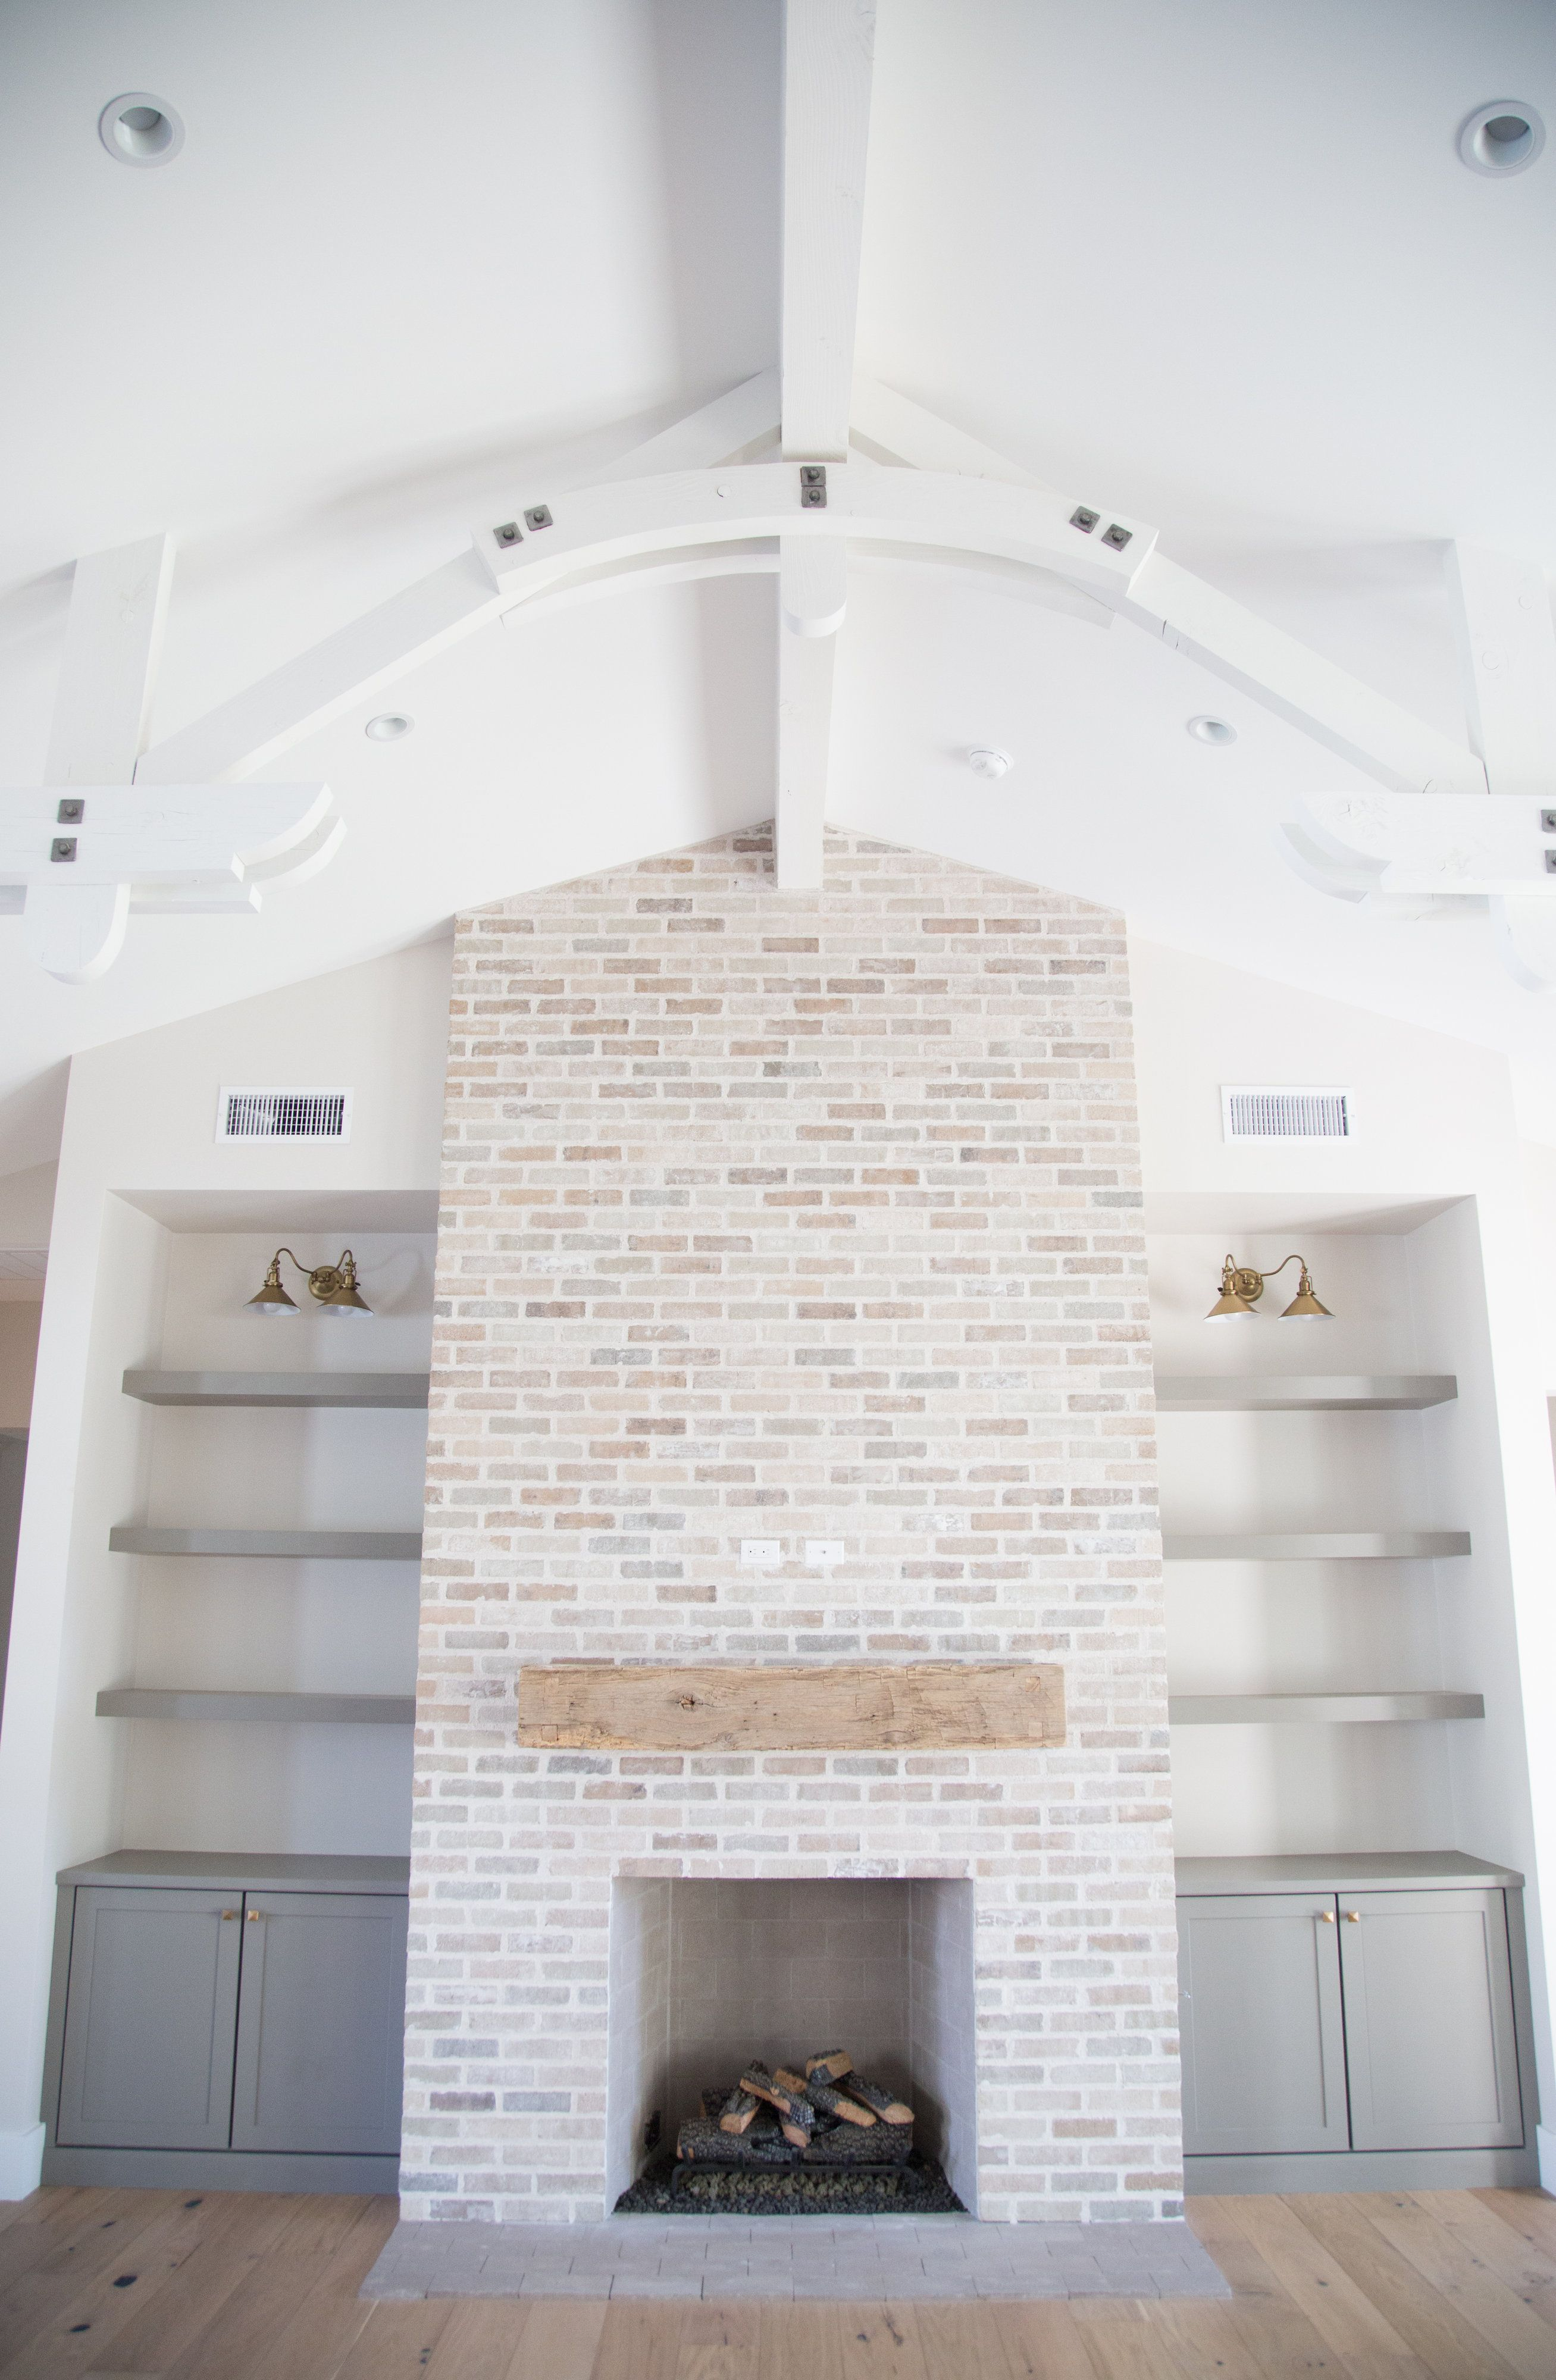 Tumbled Brick Fireplace With Grey Bookshelves And Arched Beams By Rafterhouse Brick Fireplace Makeover Farm House Living Room Home Fireplace